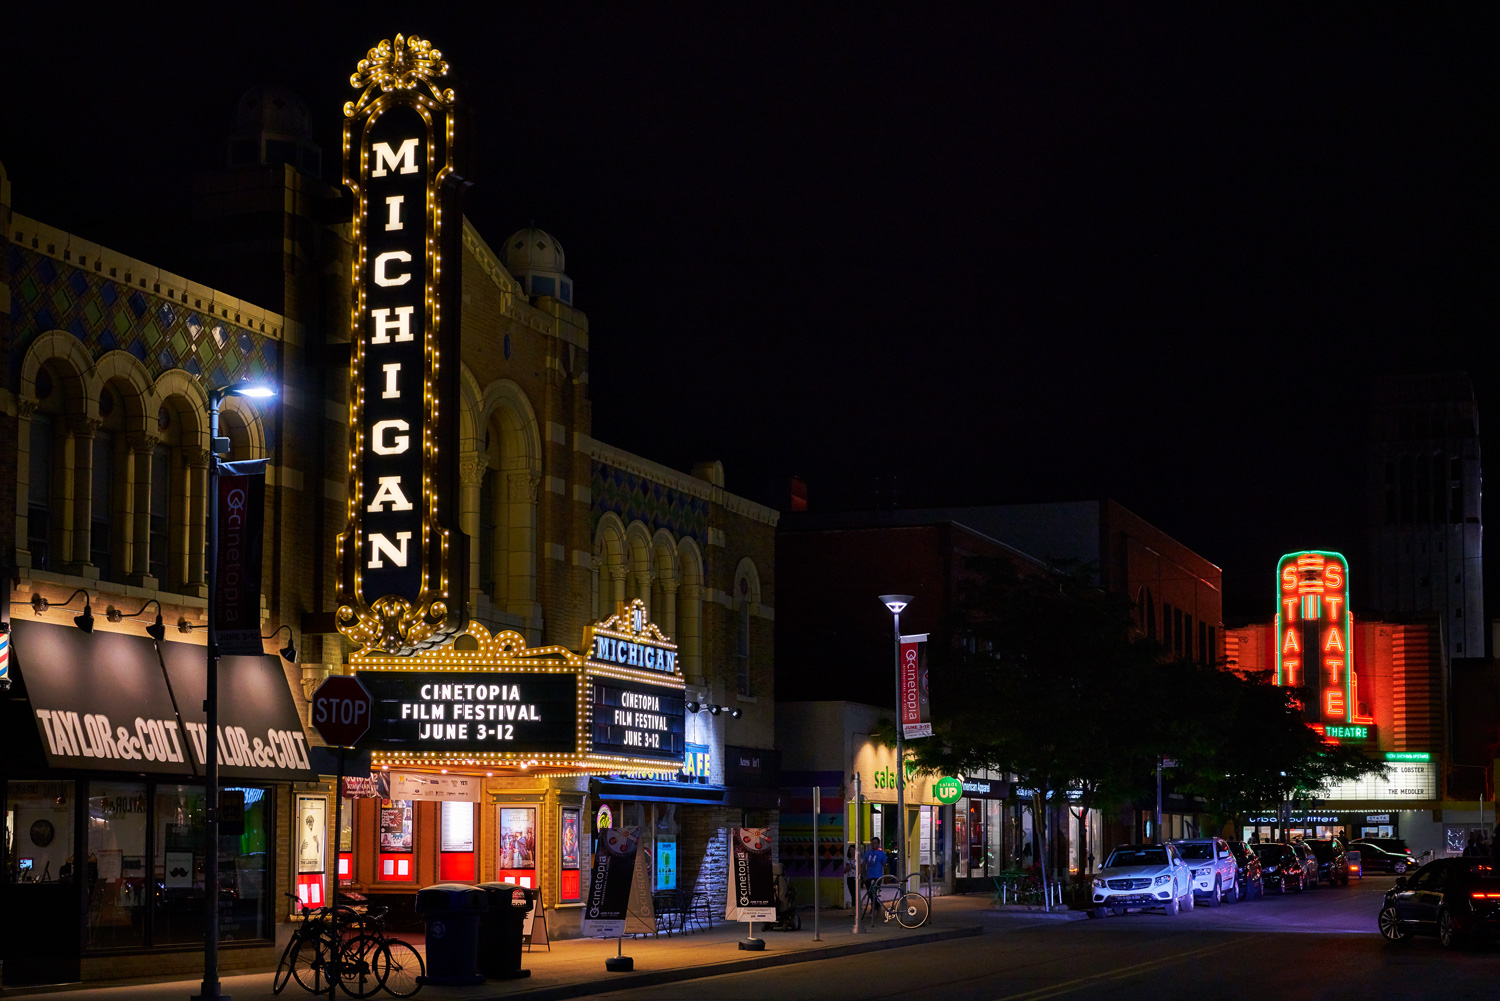 Michigan and State Theaters